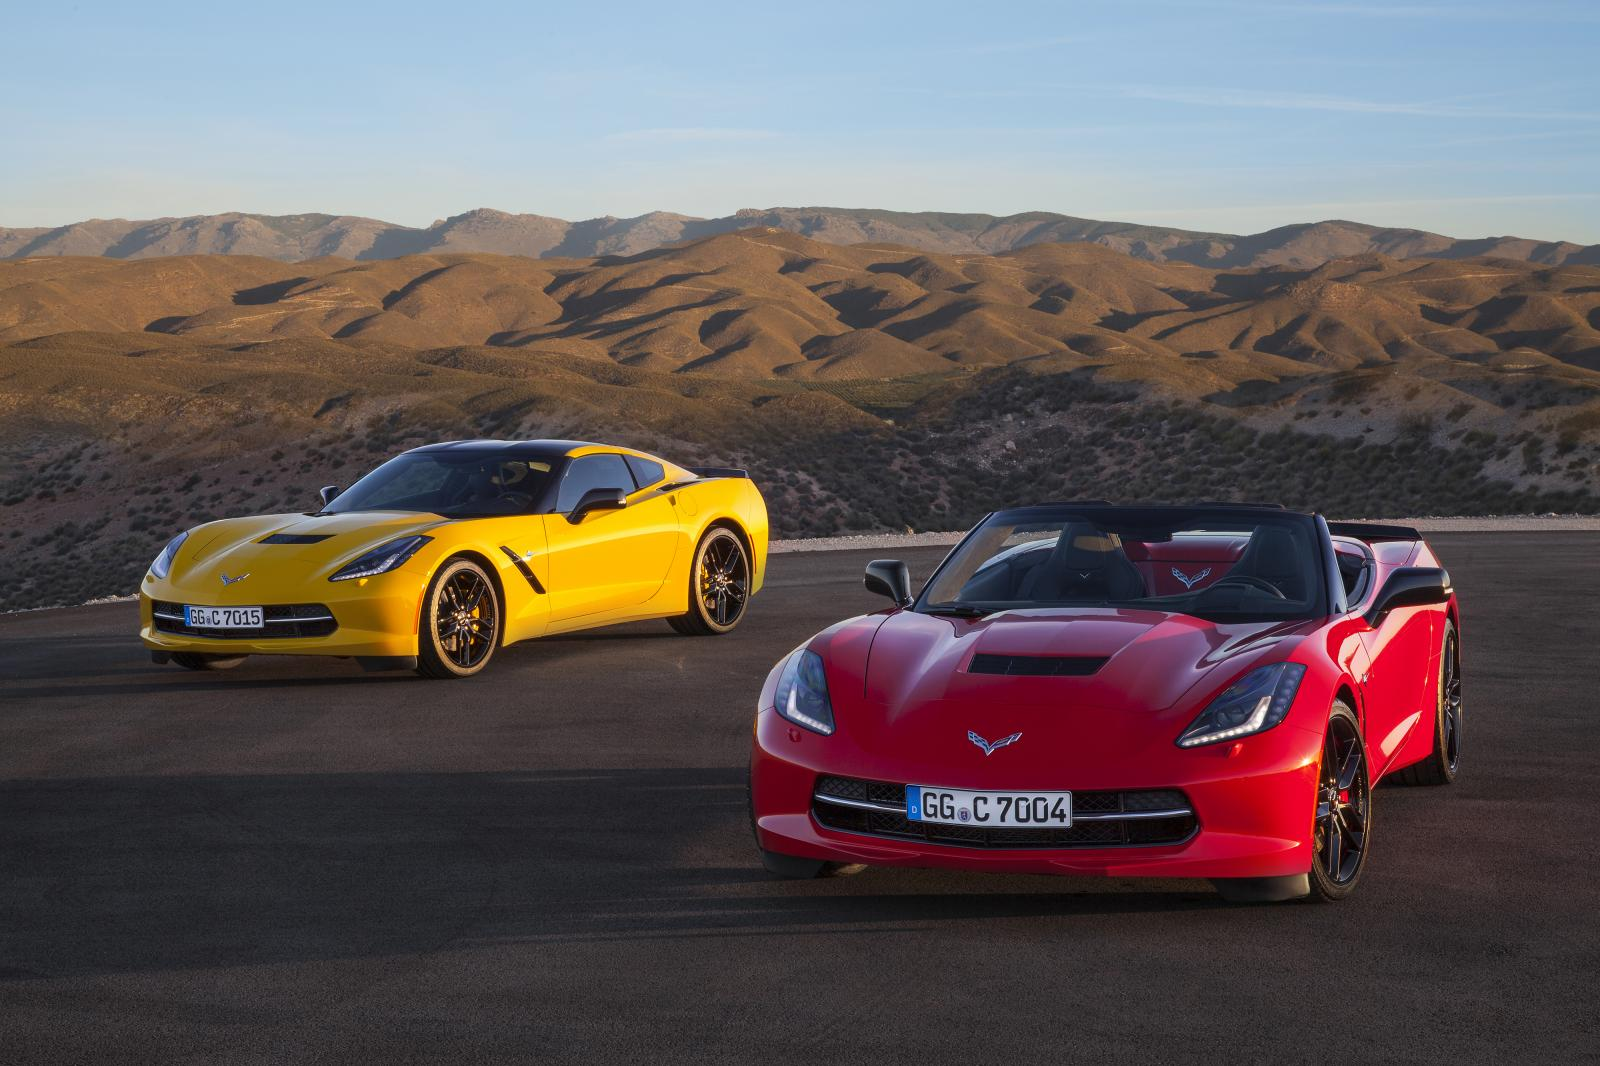 2015 chevrolet corvette european pricing starts at €74,500